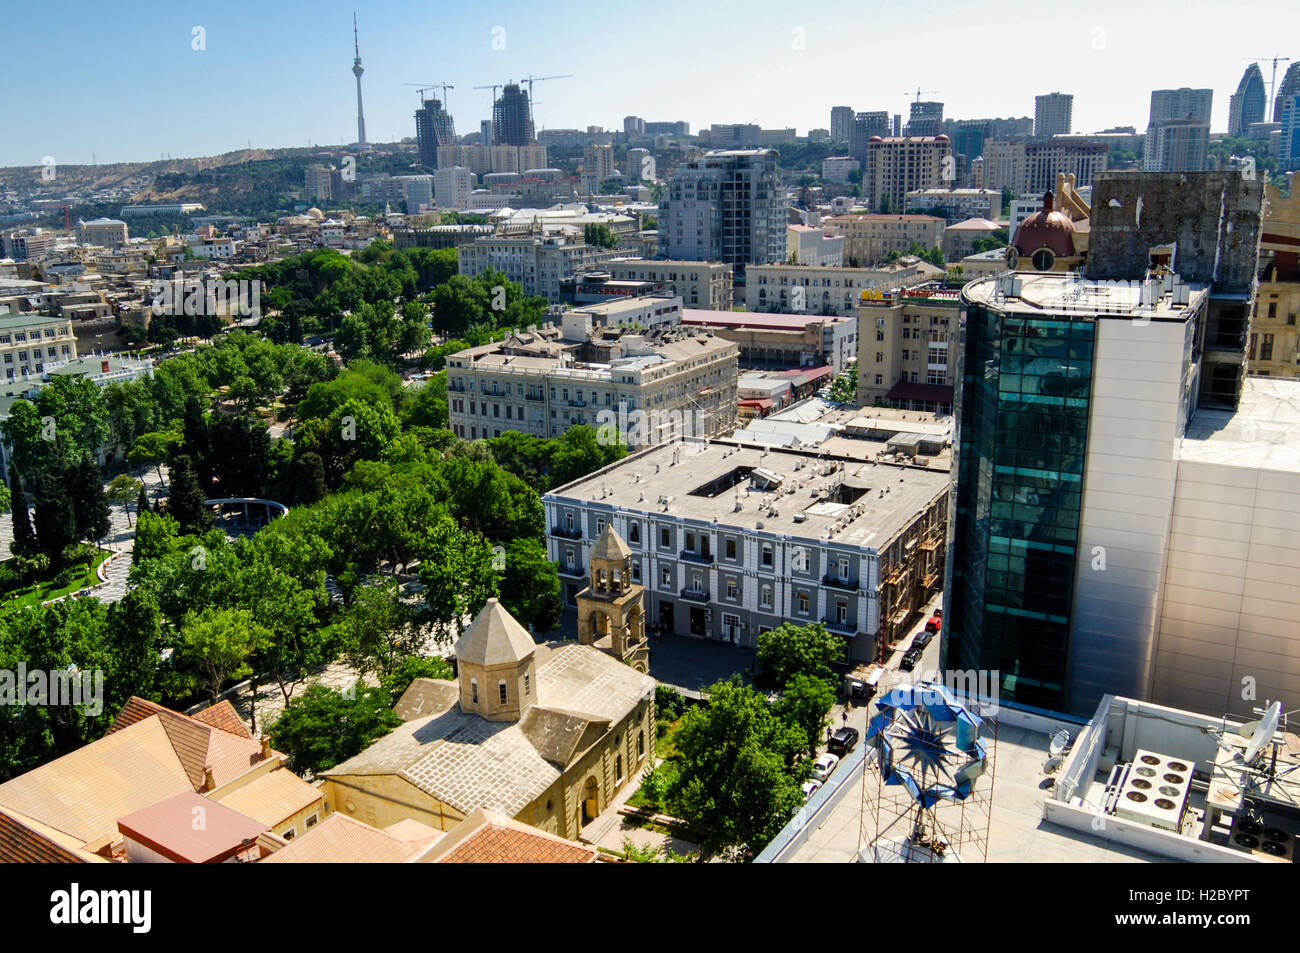 Azerbaijan, Baku. Baku city view. Flame Towers, a residential complex under construction in the background. St. - Stock Image